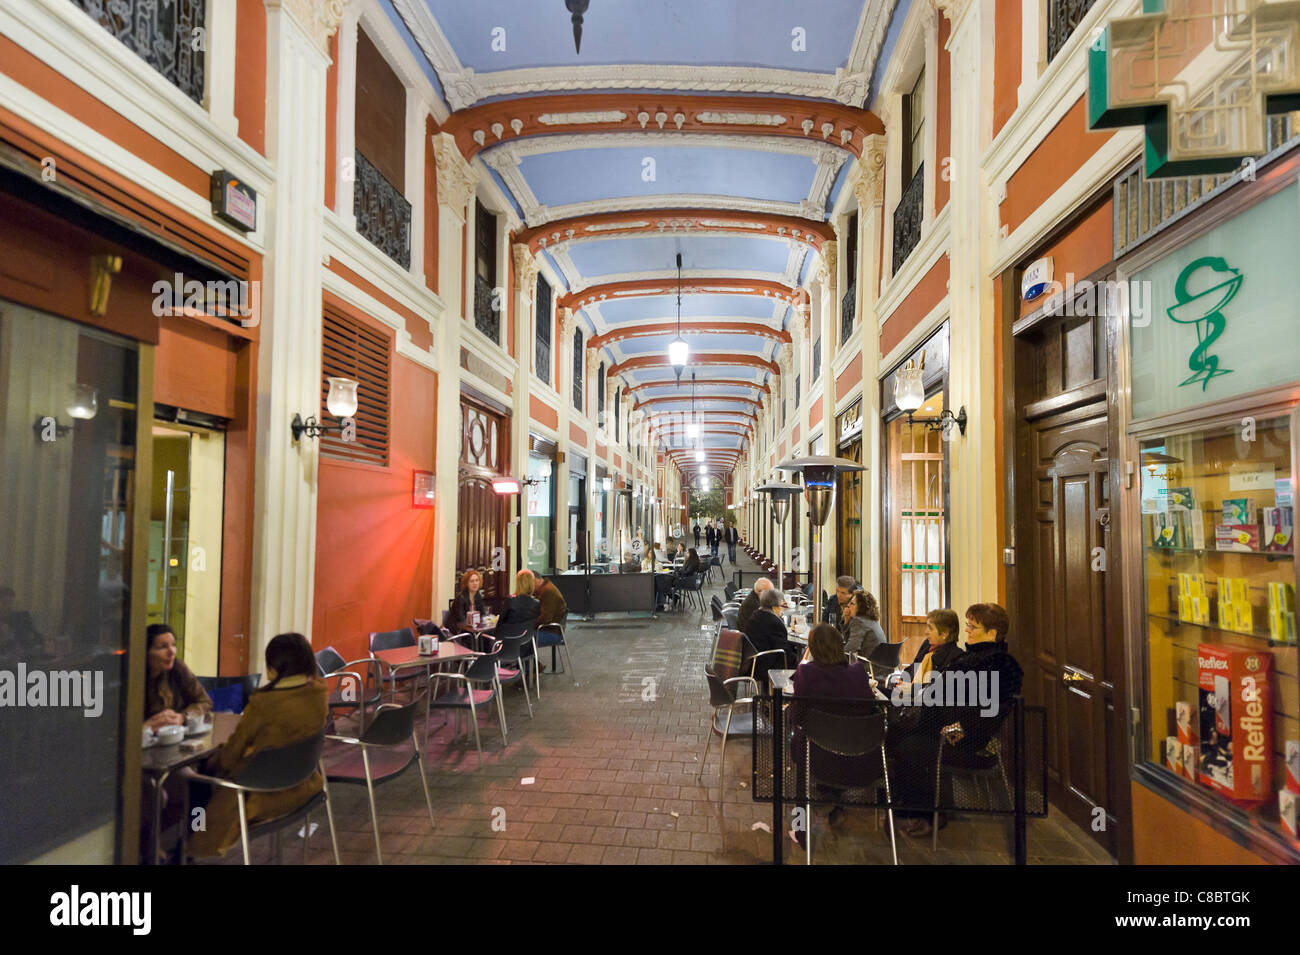 Cafe at night in an arcade just off the Plaza del Pilar, Zaragoza, Aragon, Spain - Stock Image